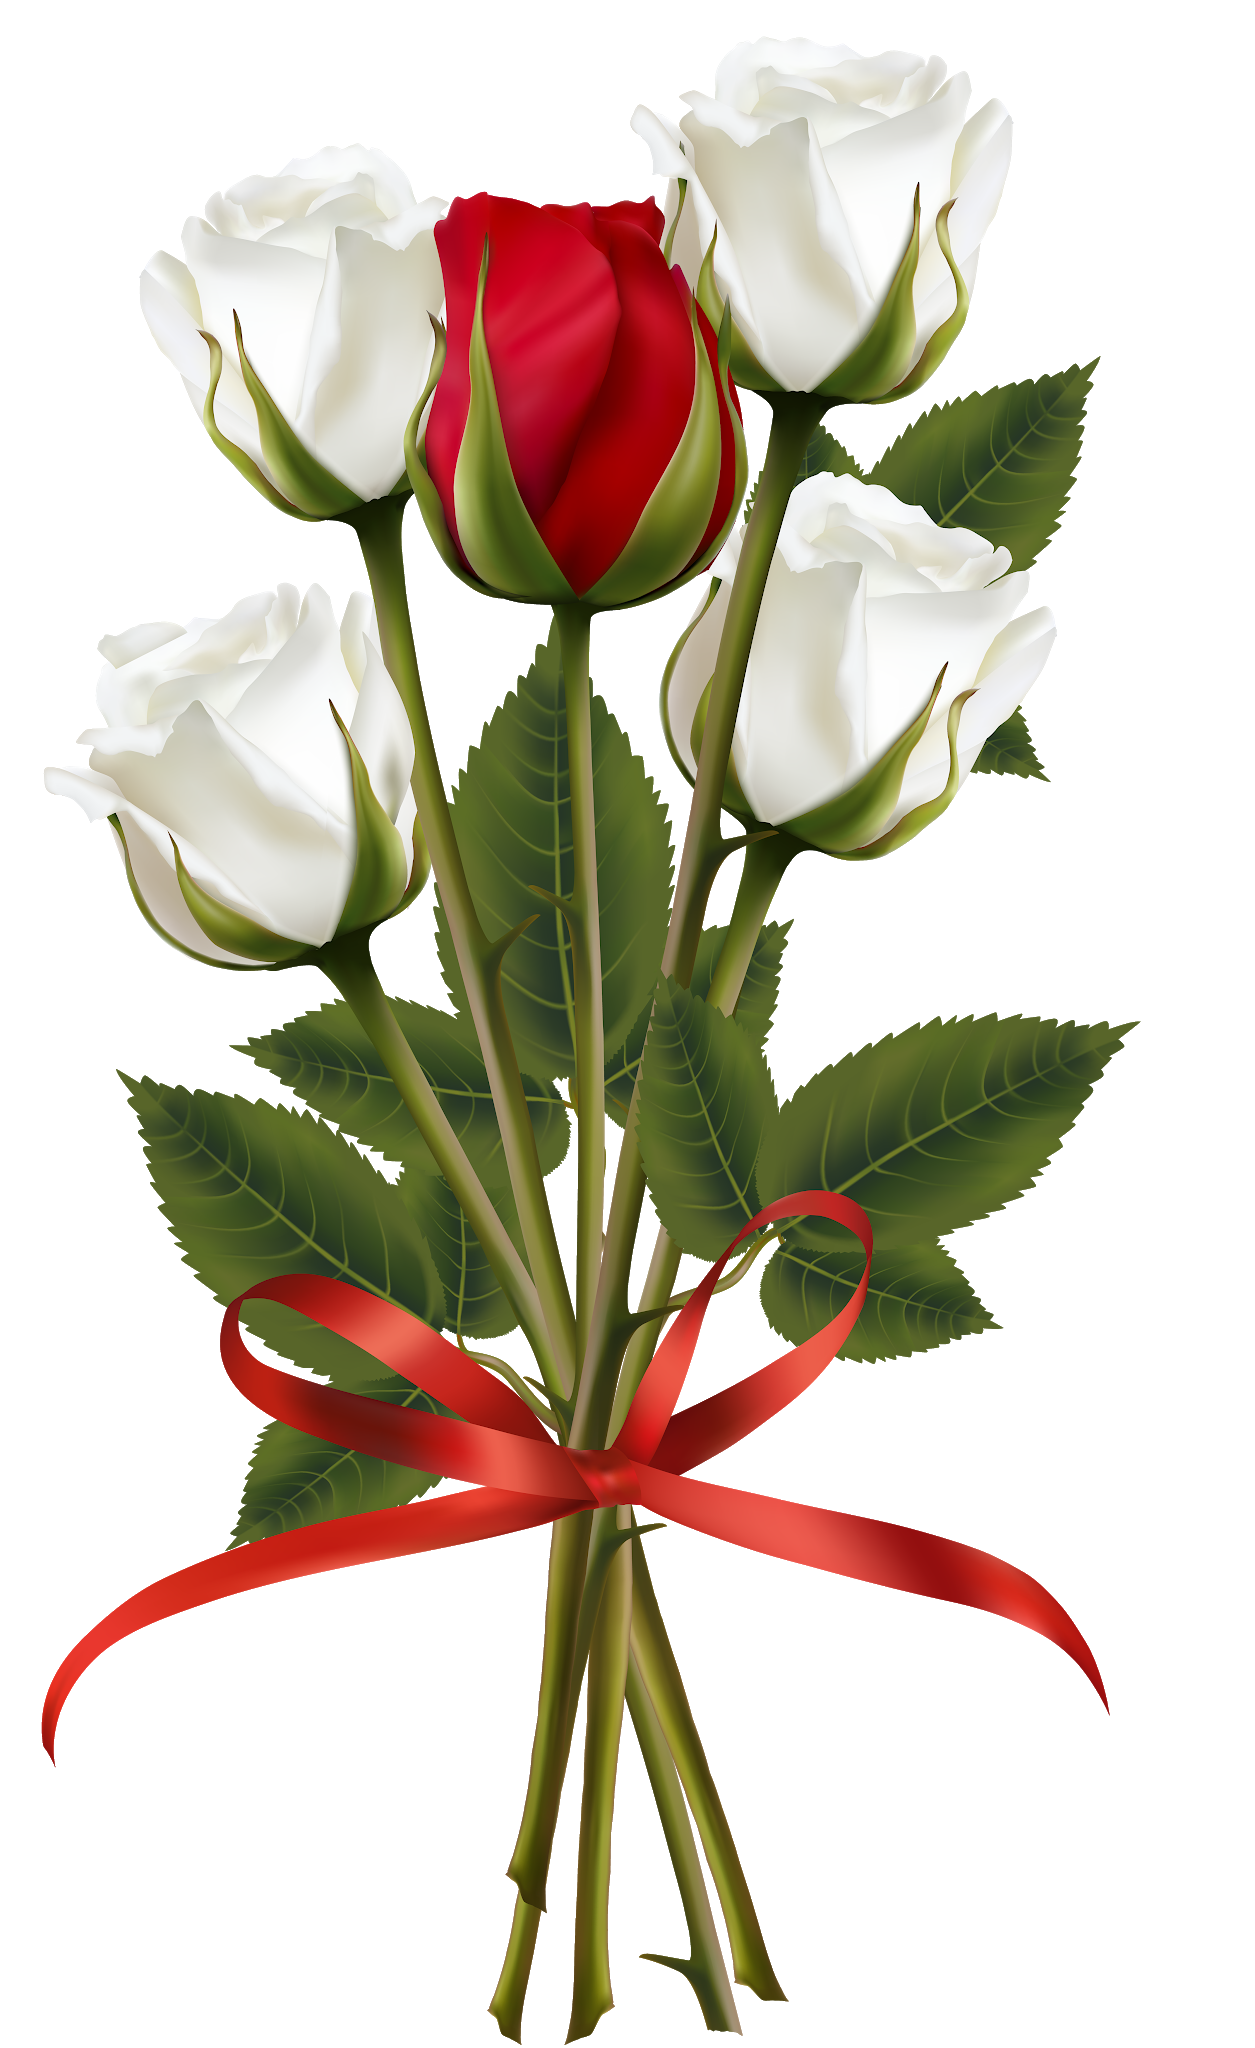 Roses clipart bunch. Flower bouquet rose red